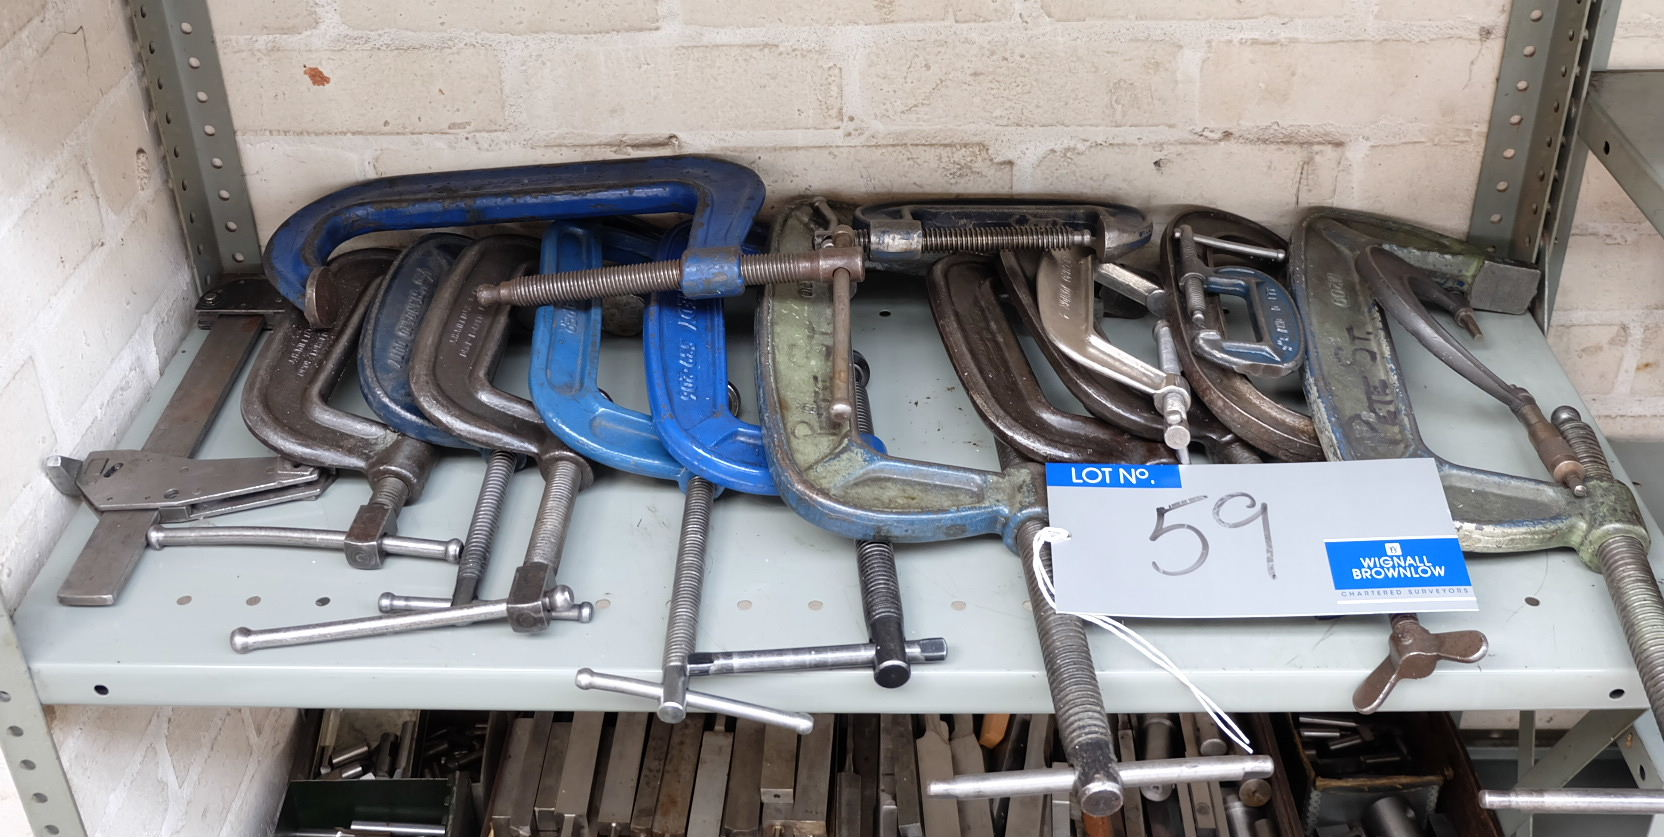 Lot 59 - 13 Assorted G Clamps.